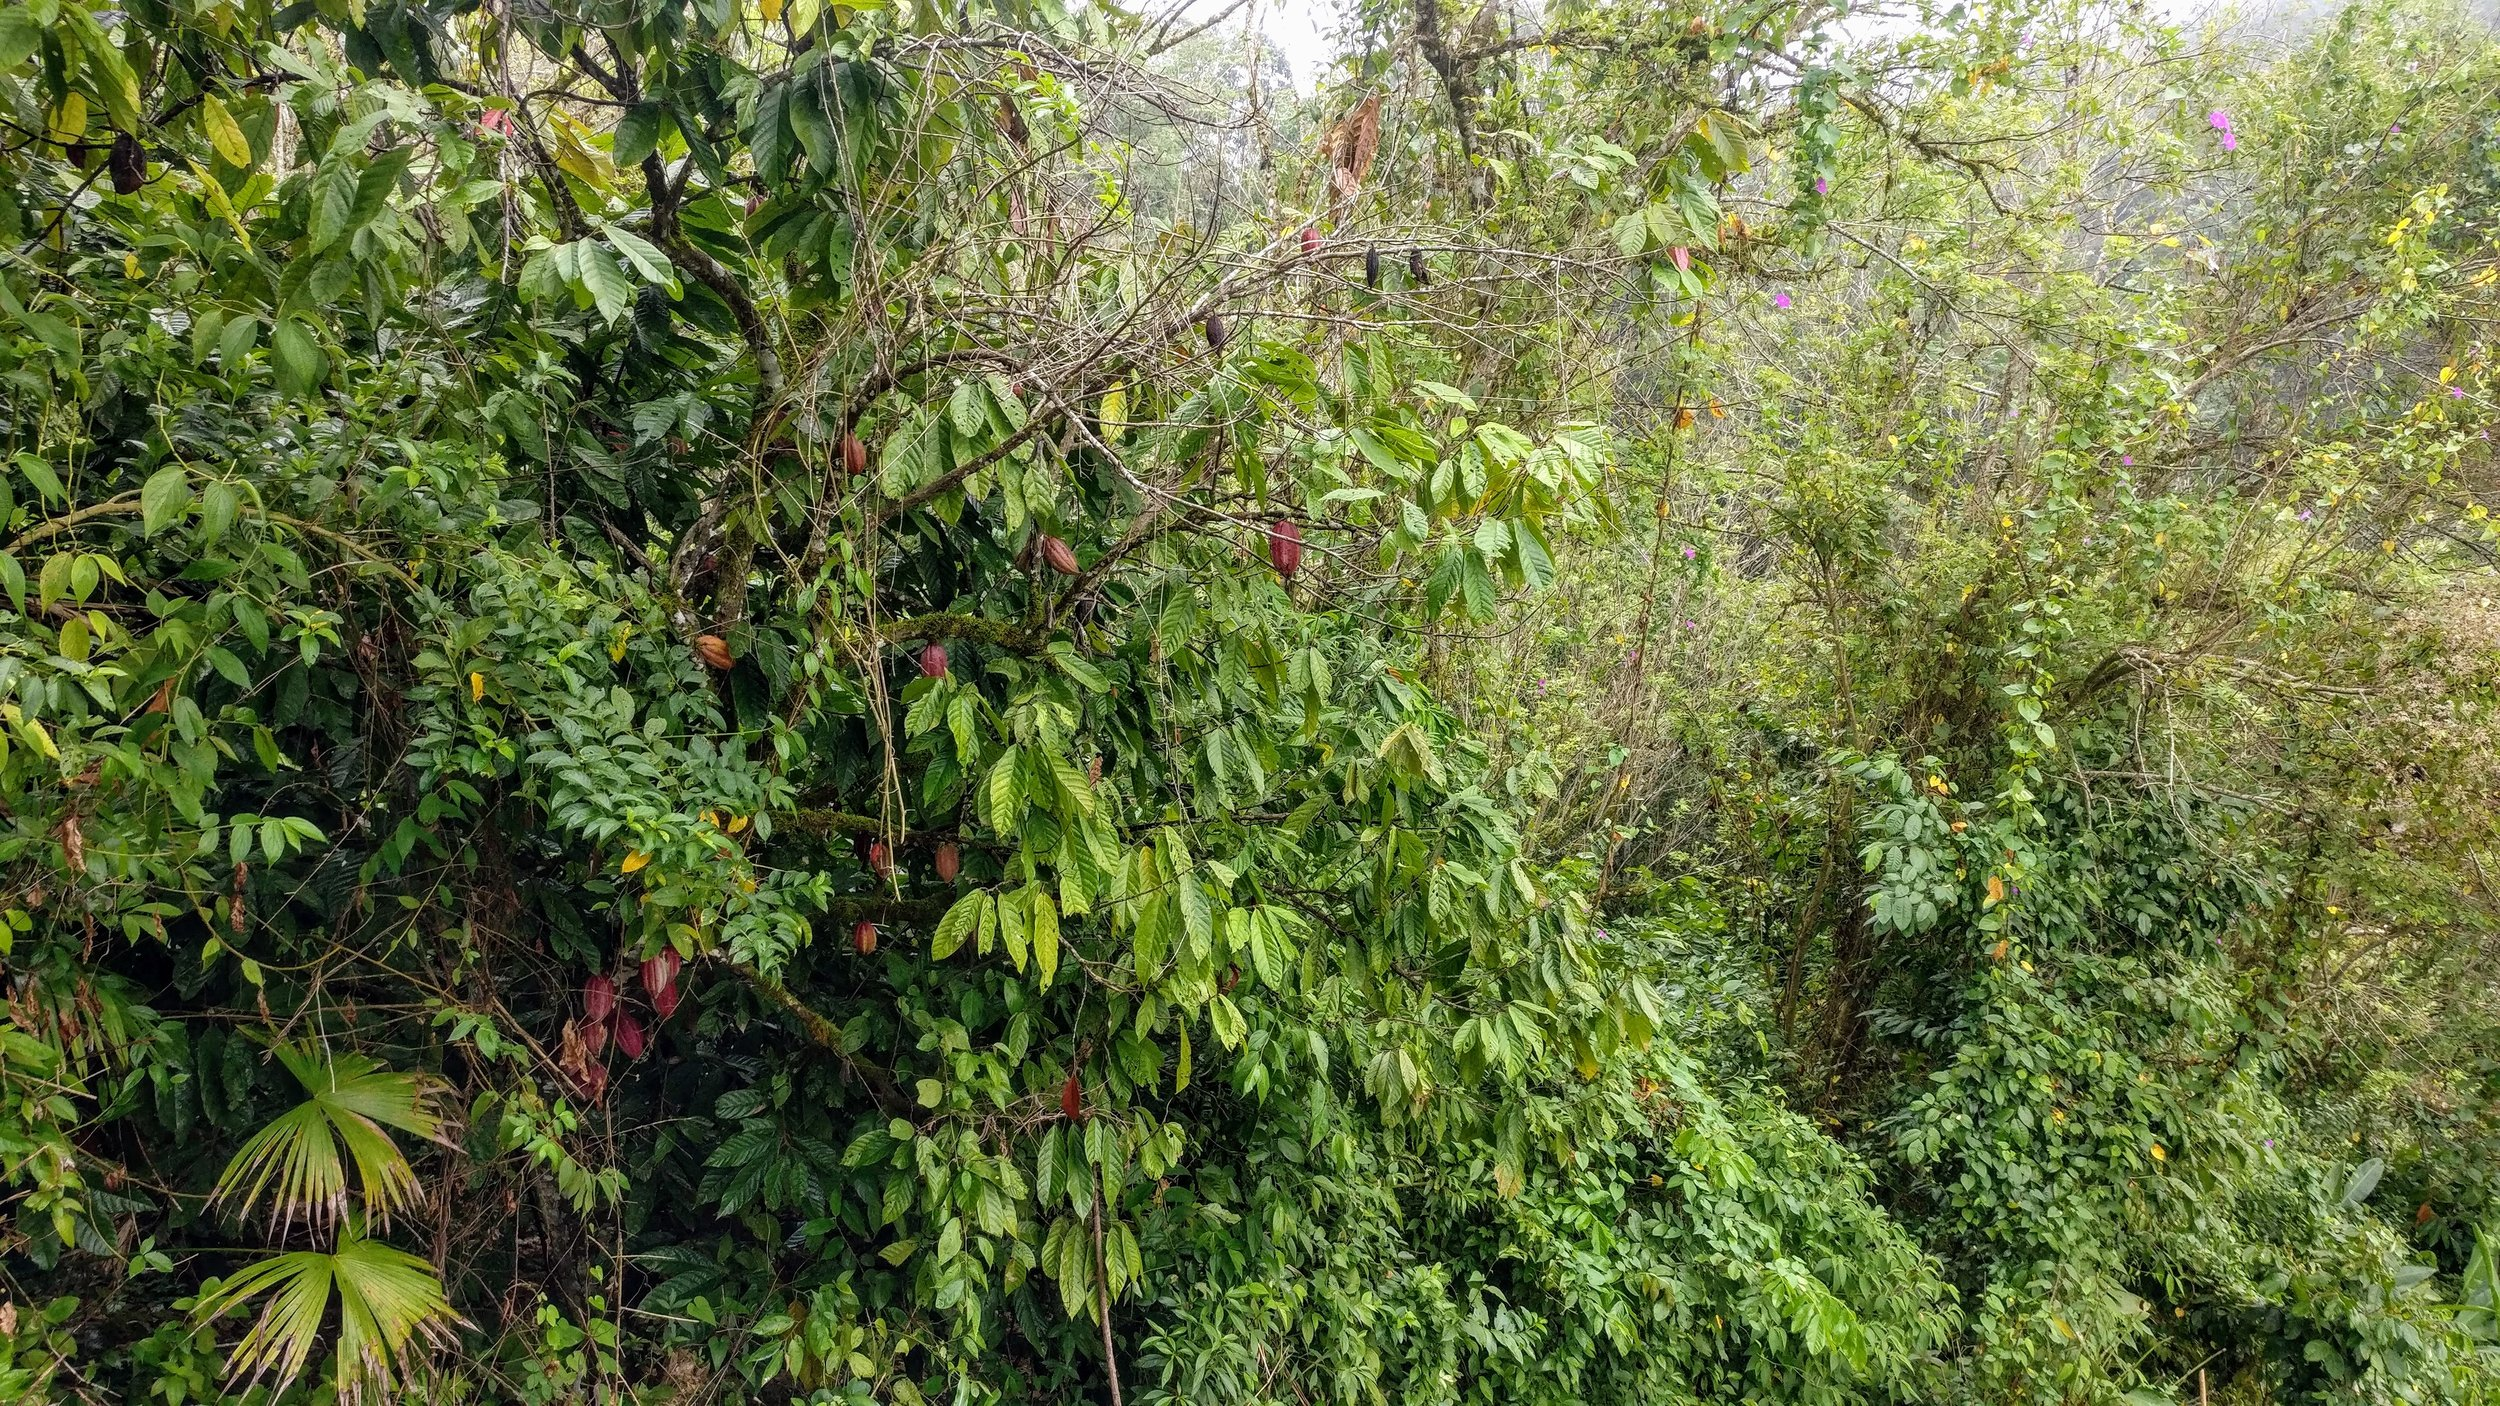 This cacao tree might be caught up a bit too much in the jungle around :-).